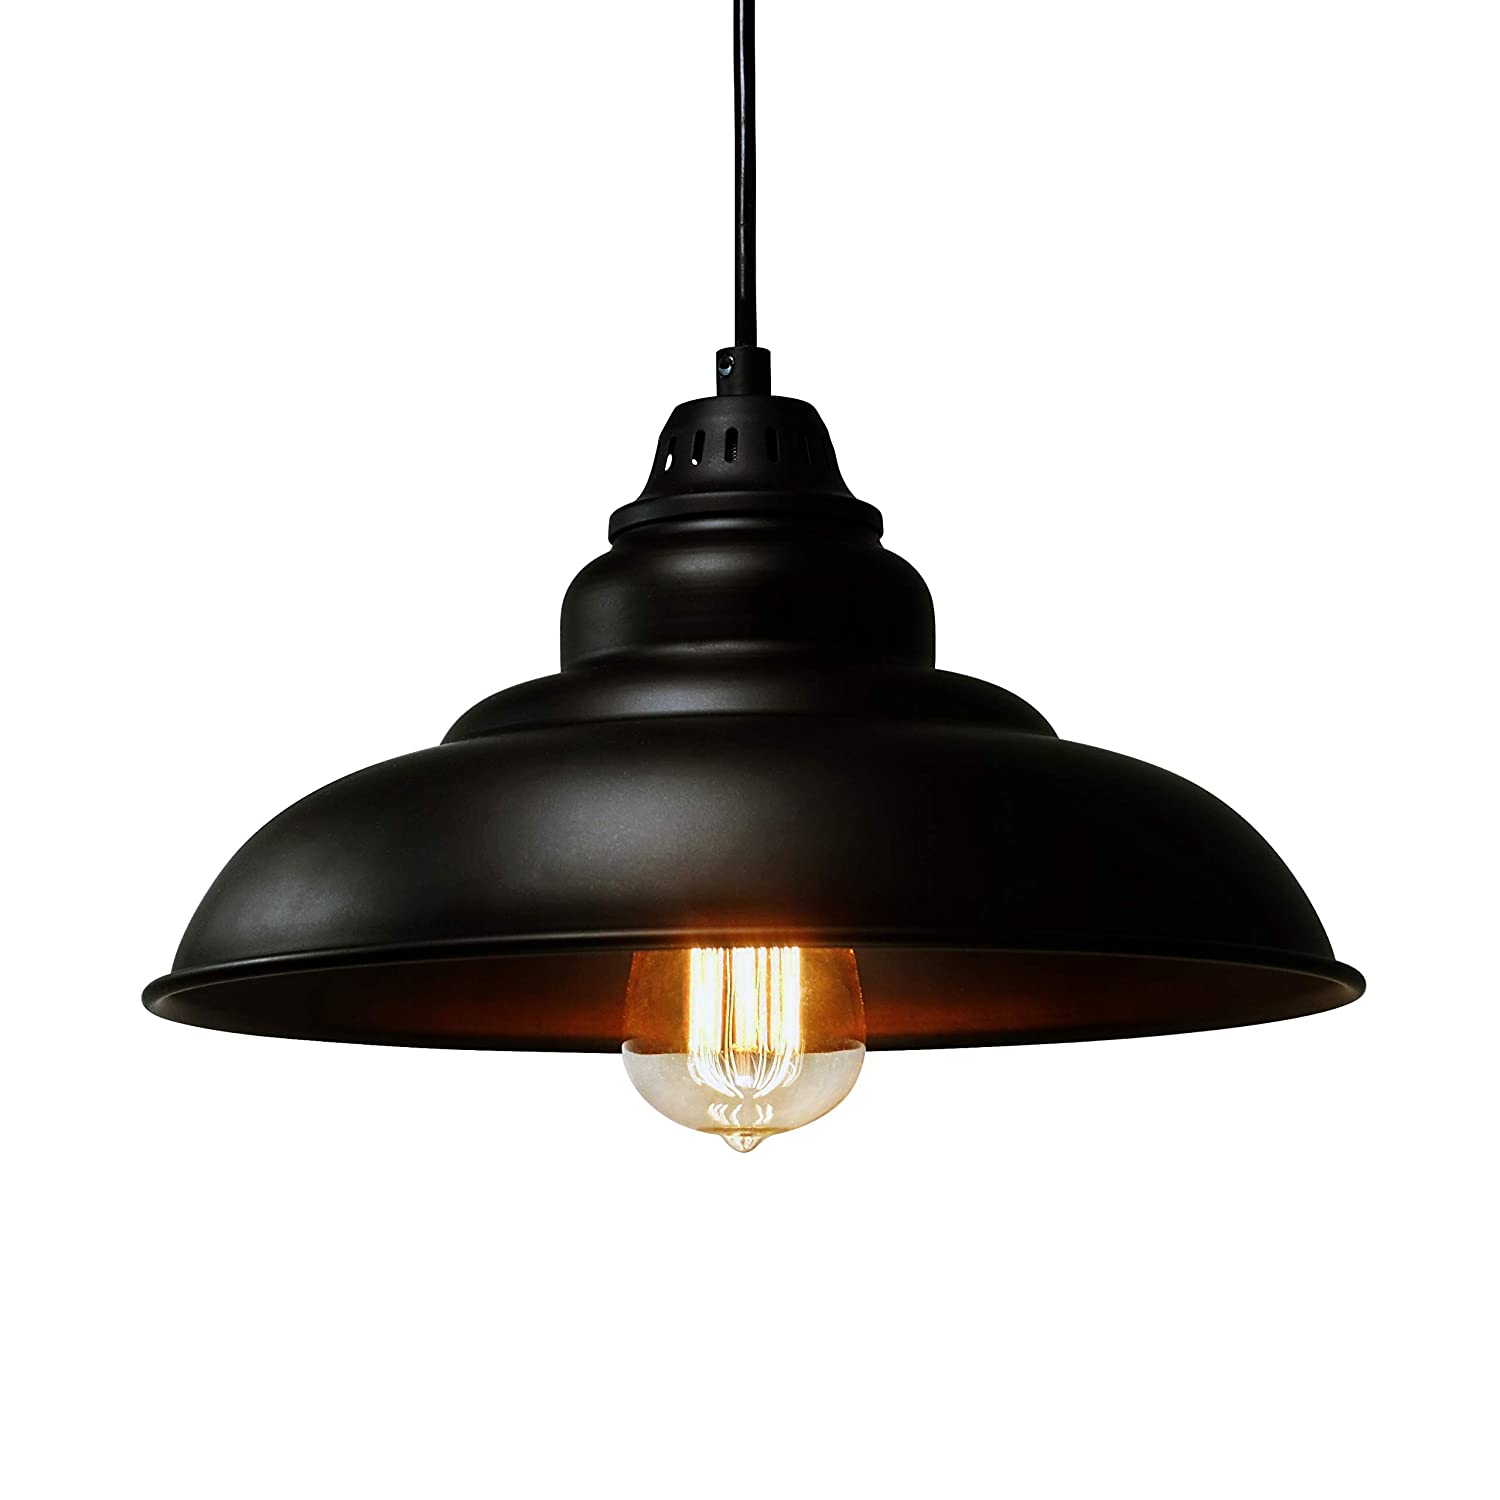 "Barn Pendant Lights, FINXIN 1-Light Hanging Light for Kitchen Dining Table FXPL01 Oil-Rubbed Bronze 12"" Ceiling Dome Pendant Lighting E26 Base (Black)"